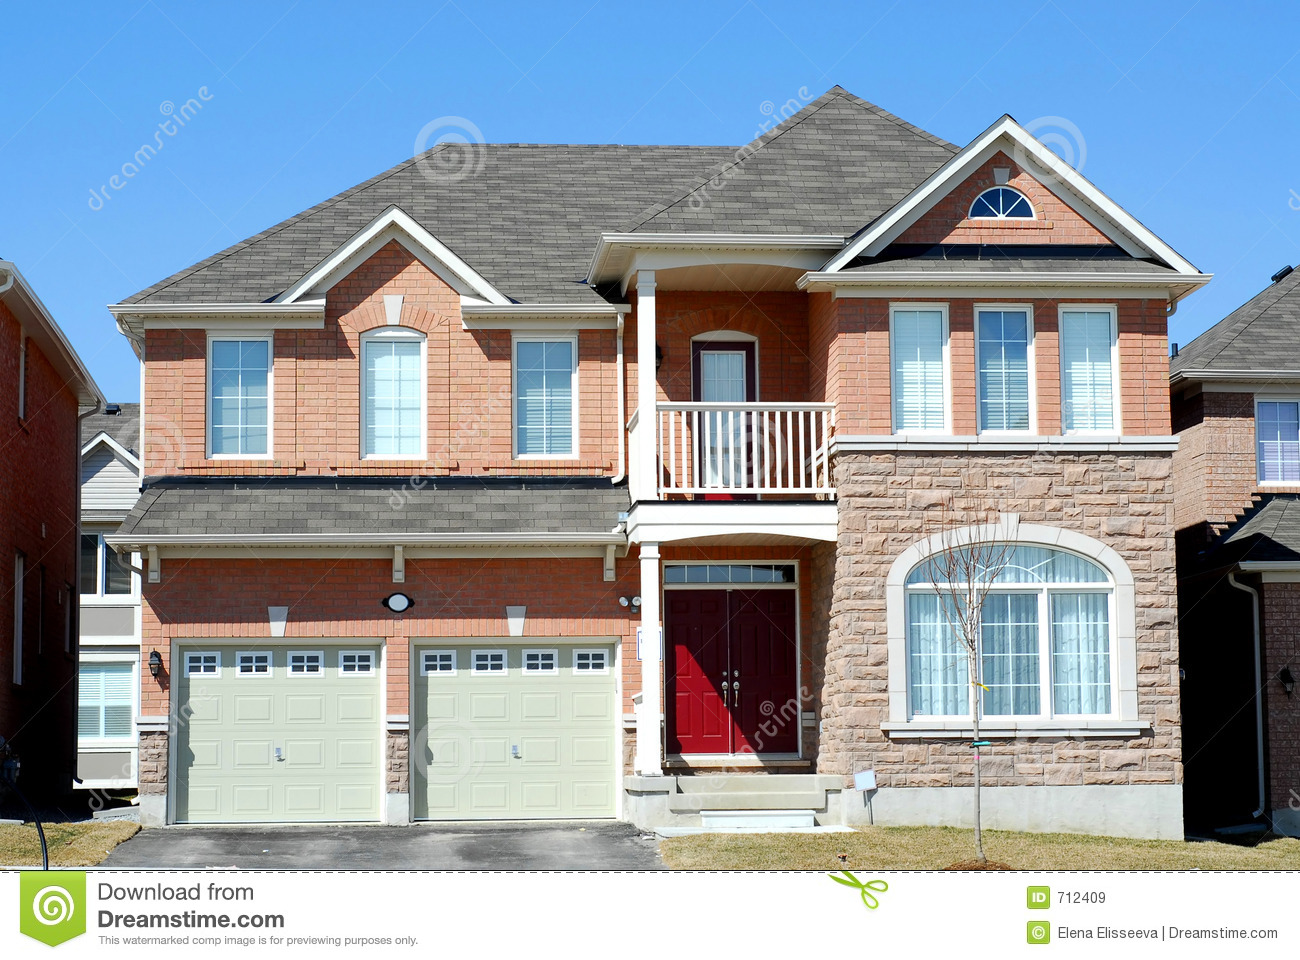 New luxury home royalty free stock images image 712409 for Free luxury home images